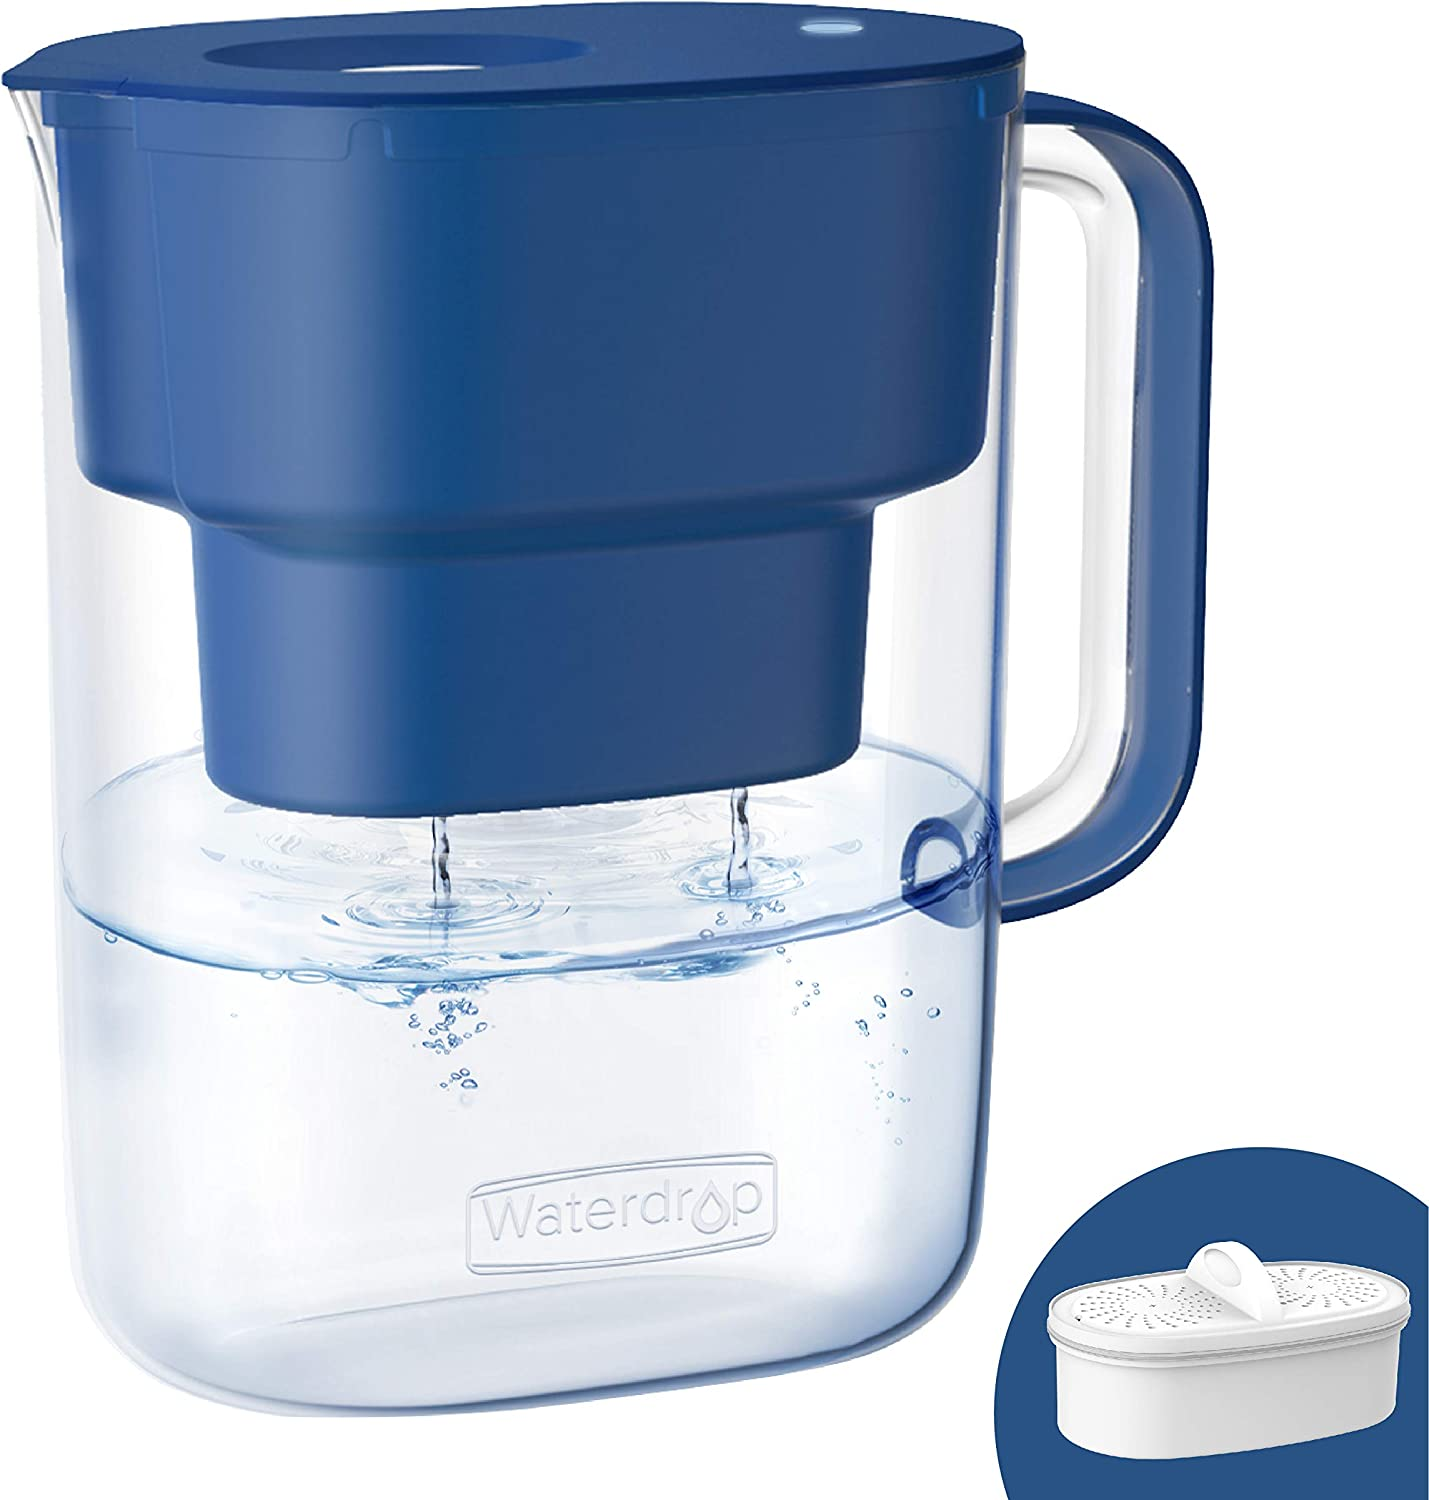 Waterdrop 10-Cup Water Filter Pitcher with 1 Filter, Long-Lasting (200 gallons), 5X Times Lifetime Filtration Jug, Reduces Lead, Fluoride, Chlorine and More, BPA Free, Classic Blue, Model: WD-PT-07C